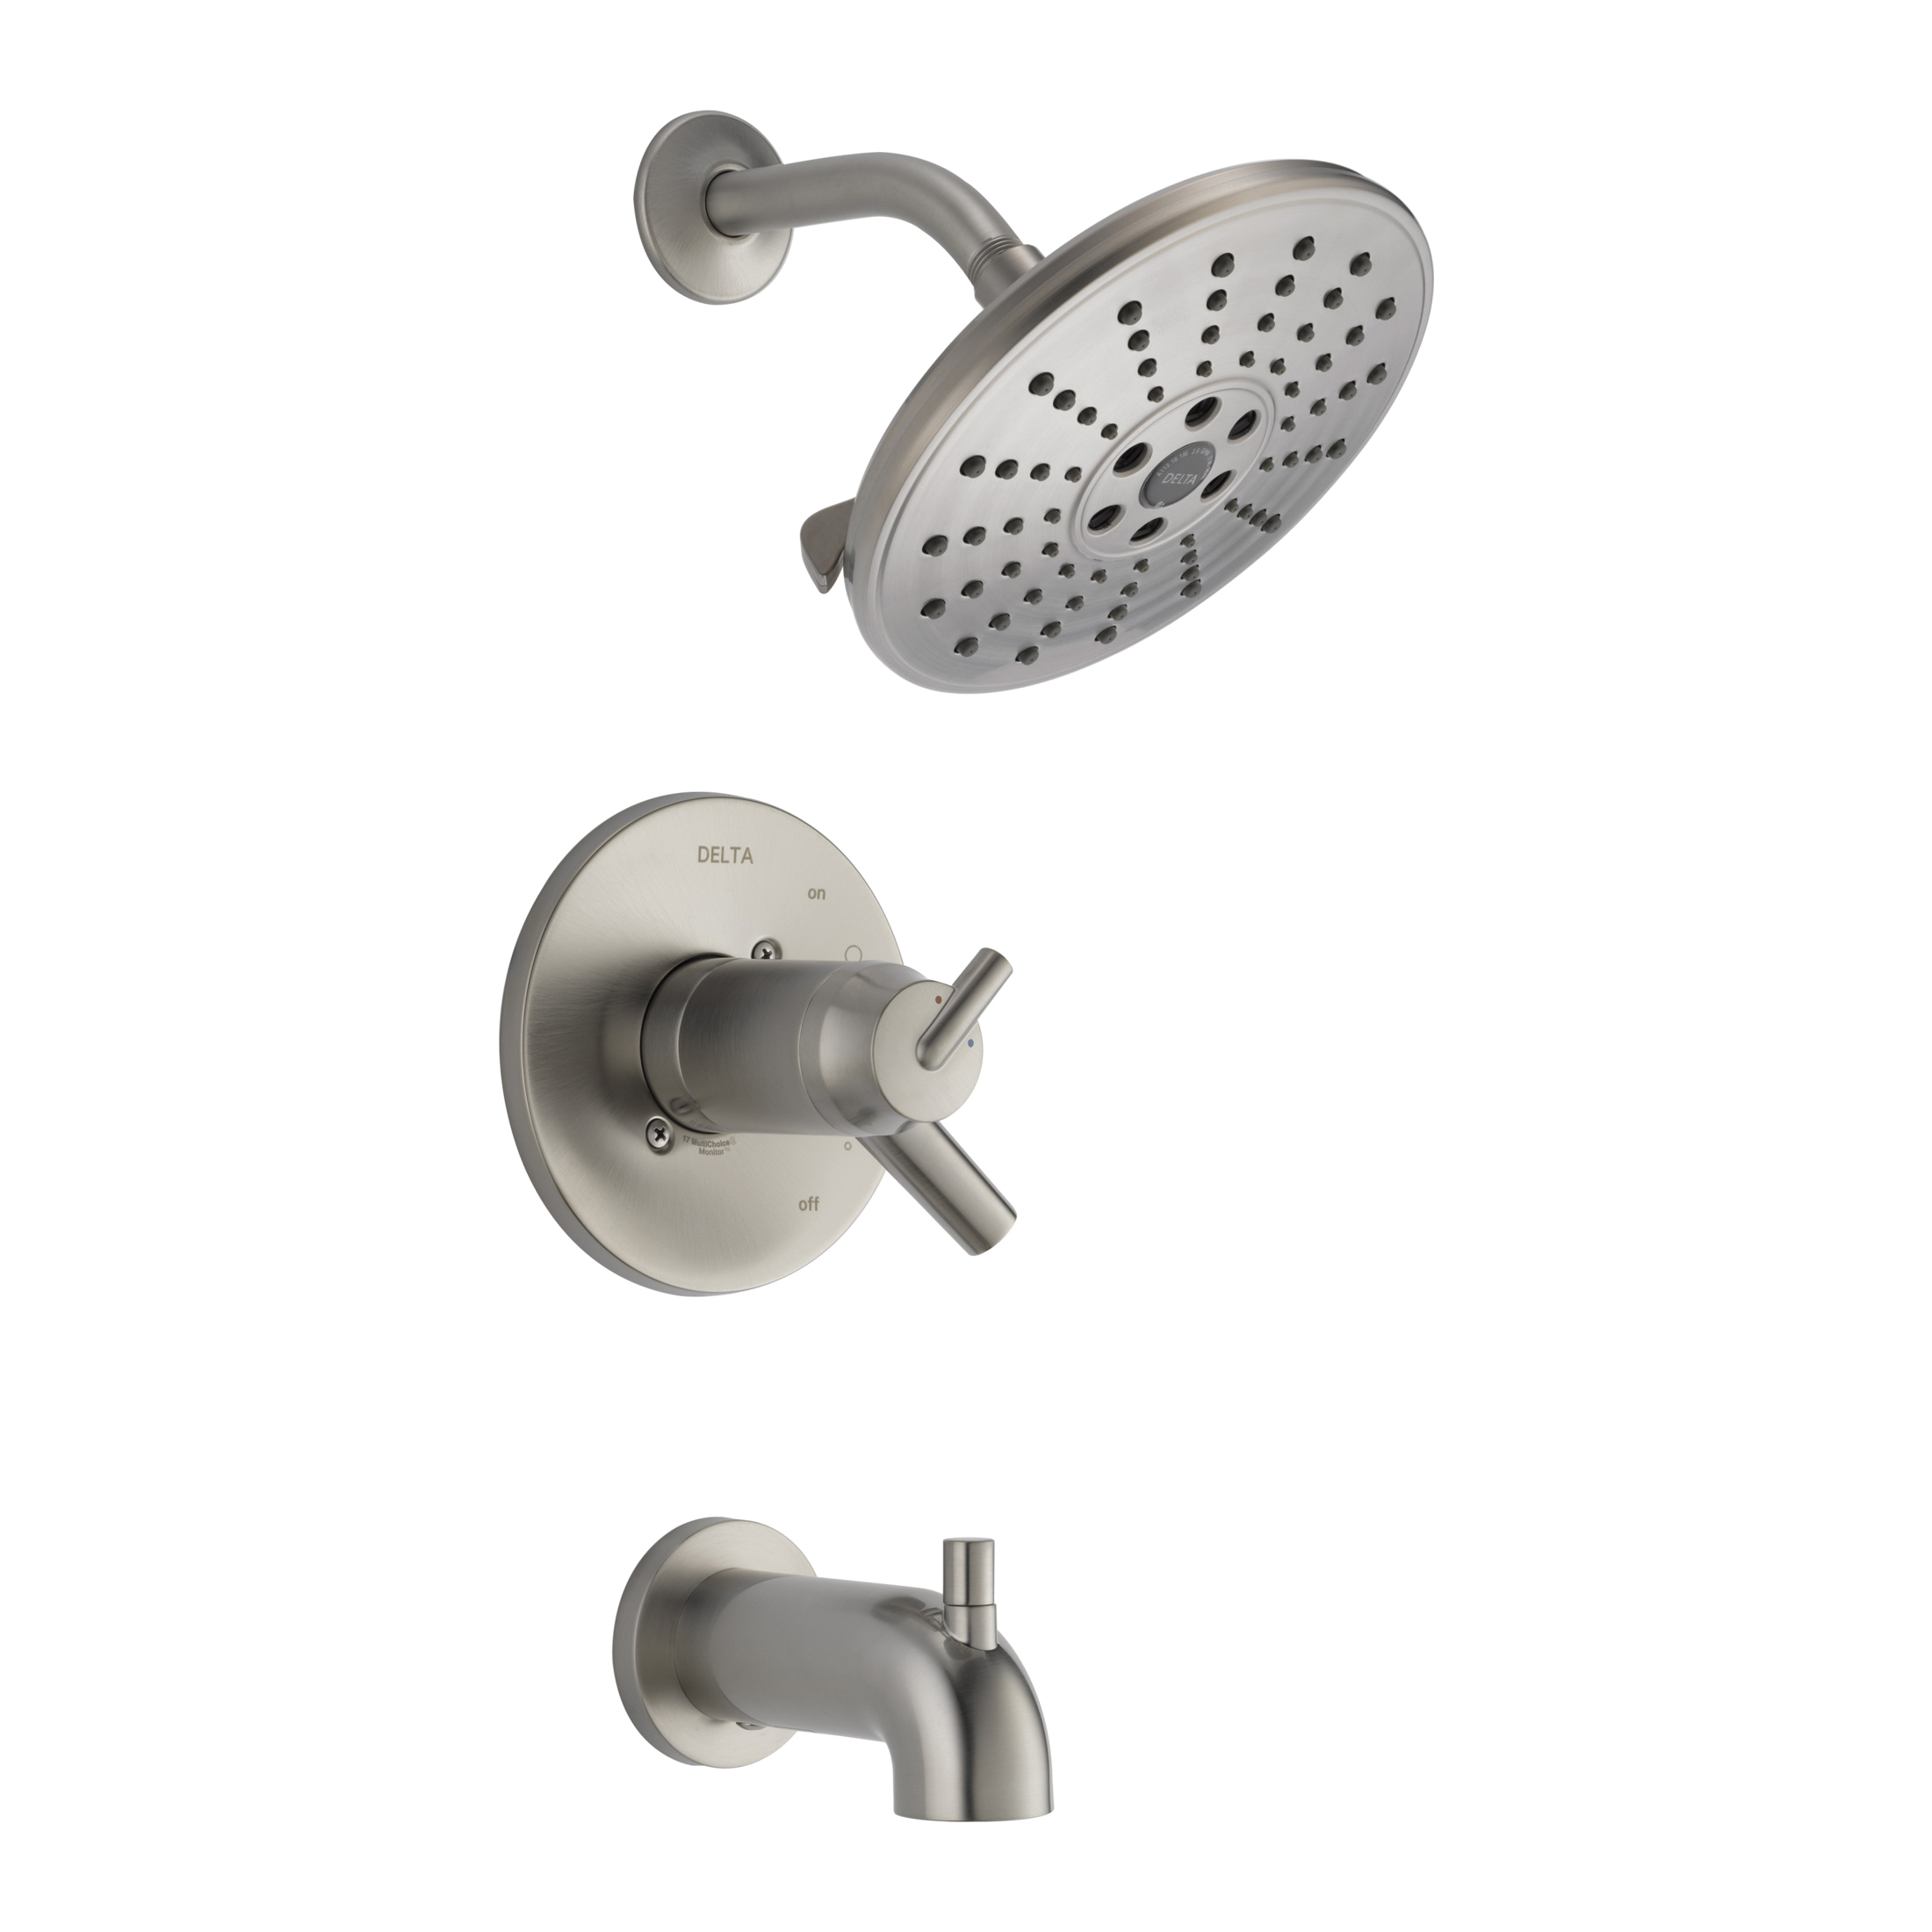 DELTA® T17T459-SSH2O TempAssure® 17T Tub and Shower Faucet Trim, 1.75 gpm Shower, Hand Shower Yes/No: No, Brilliance® Stainless Steel